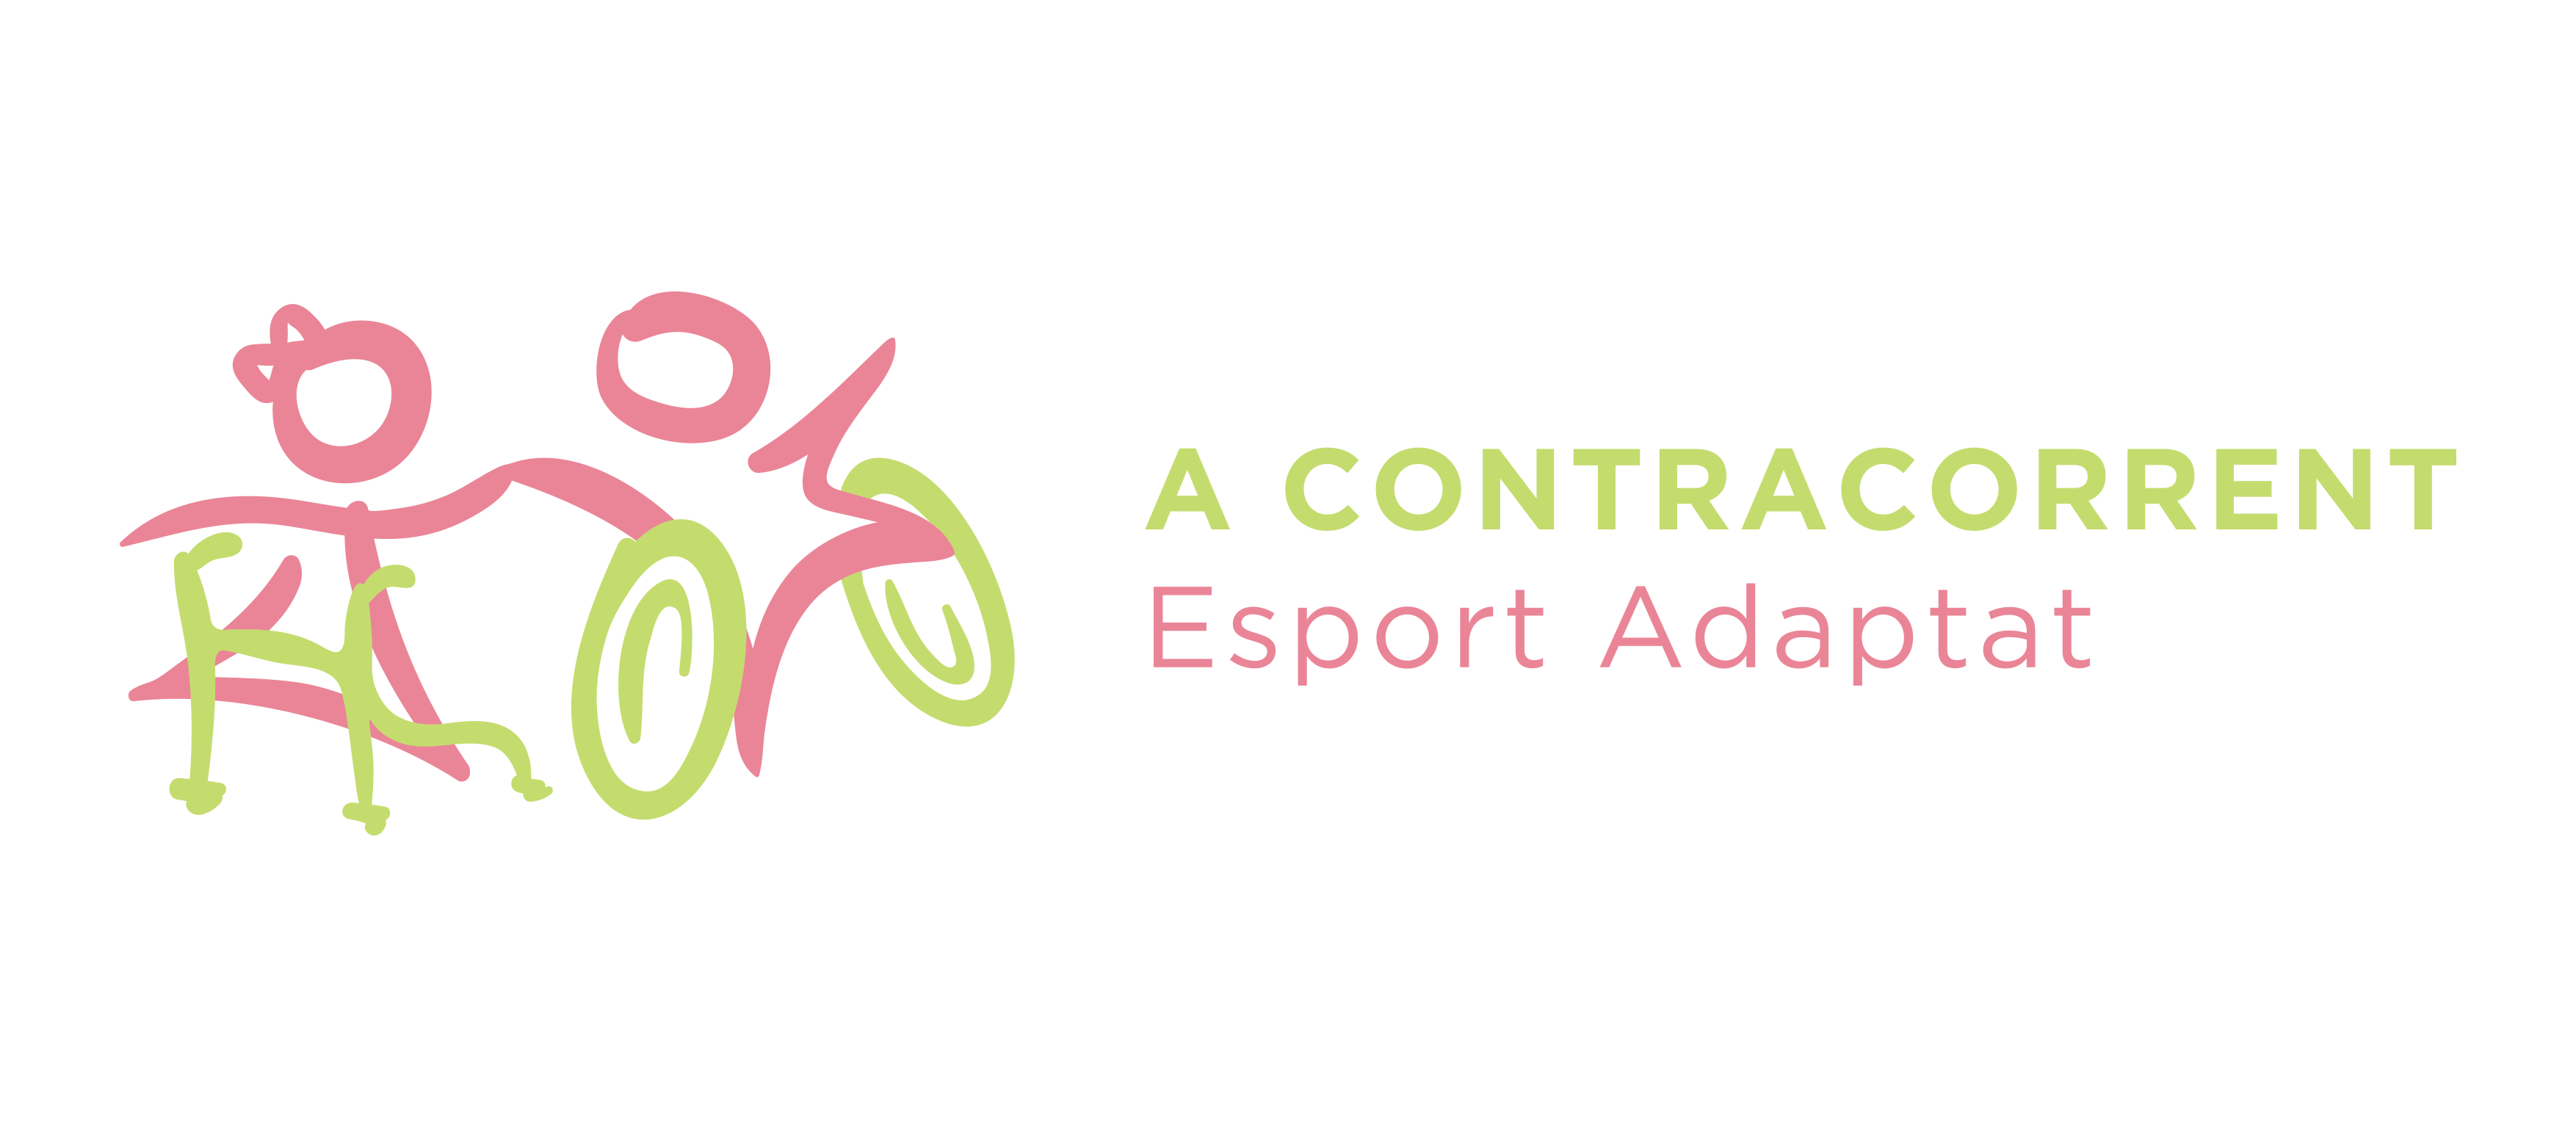 A Contracorrent Esport Adaptat